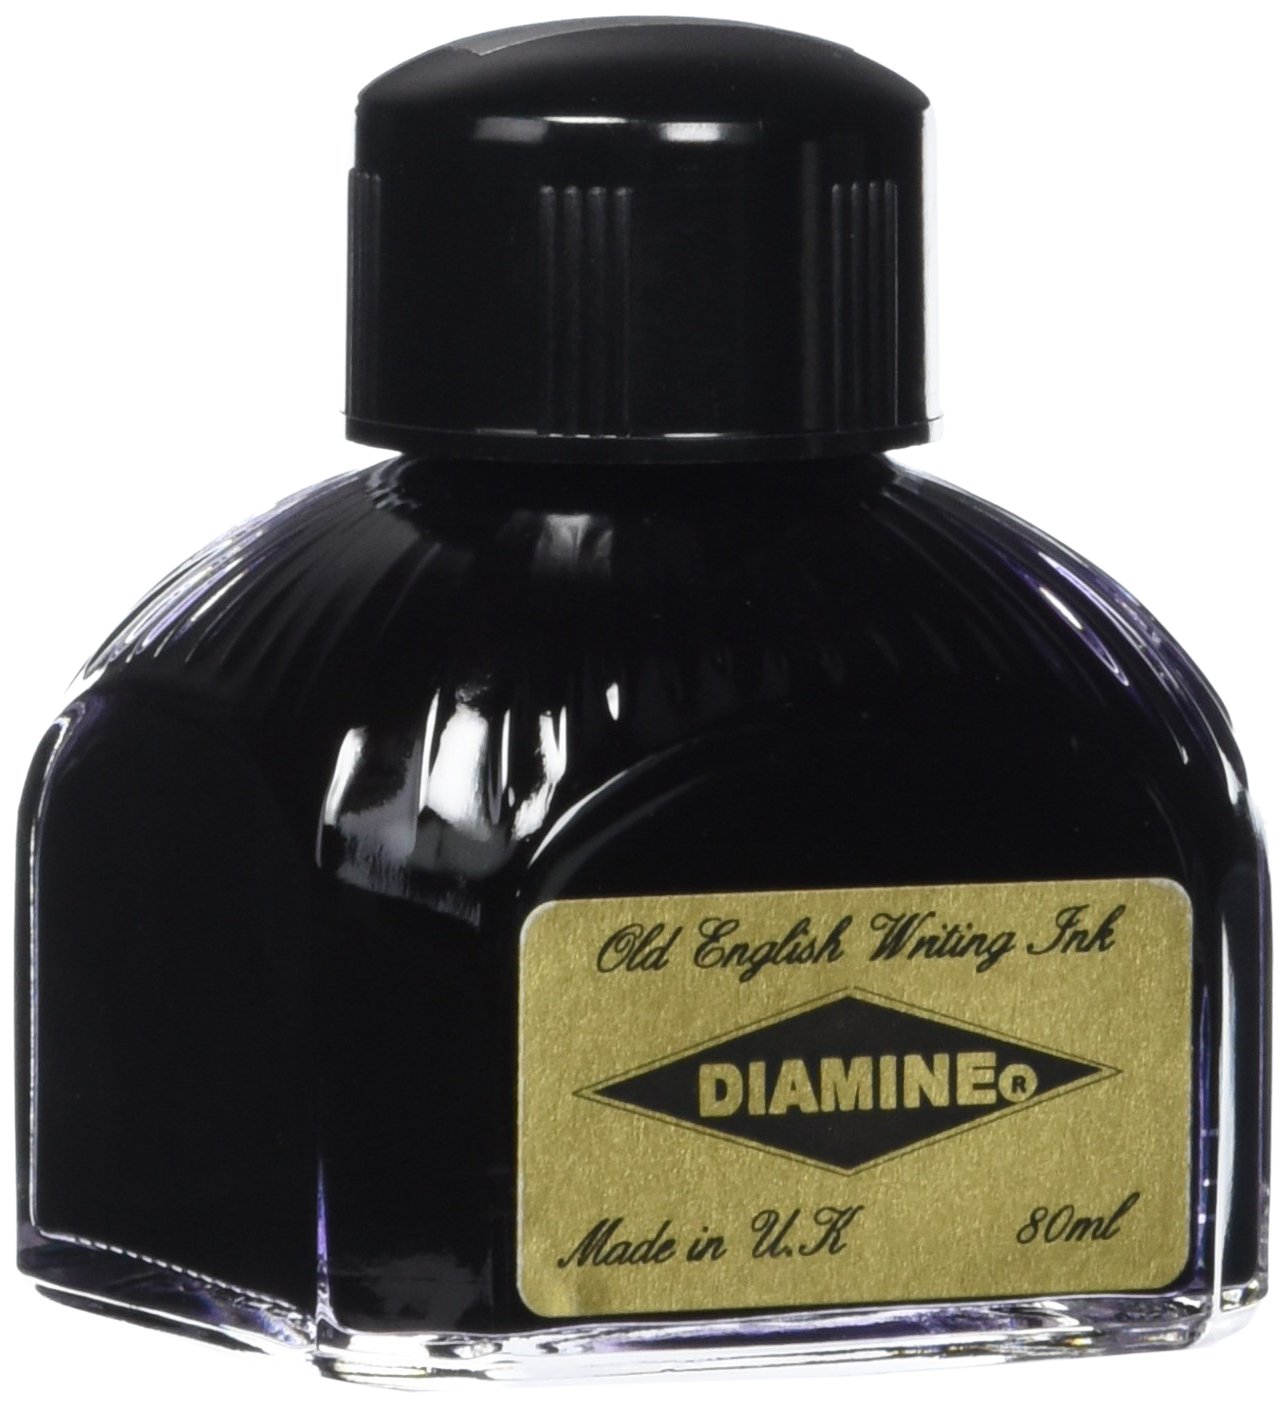 Diamine - Inchiostro per penna stilografica, Quartz Black 80ml 047